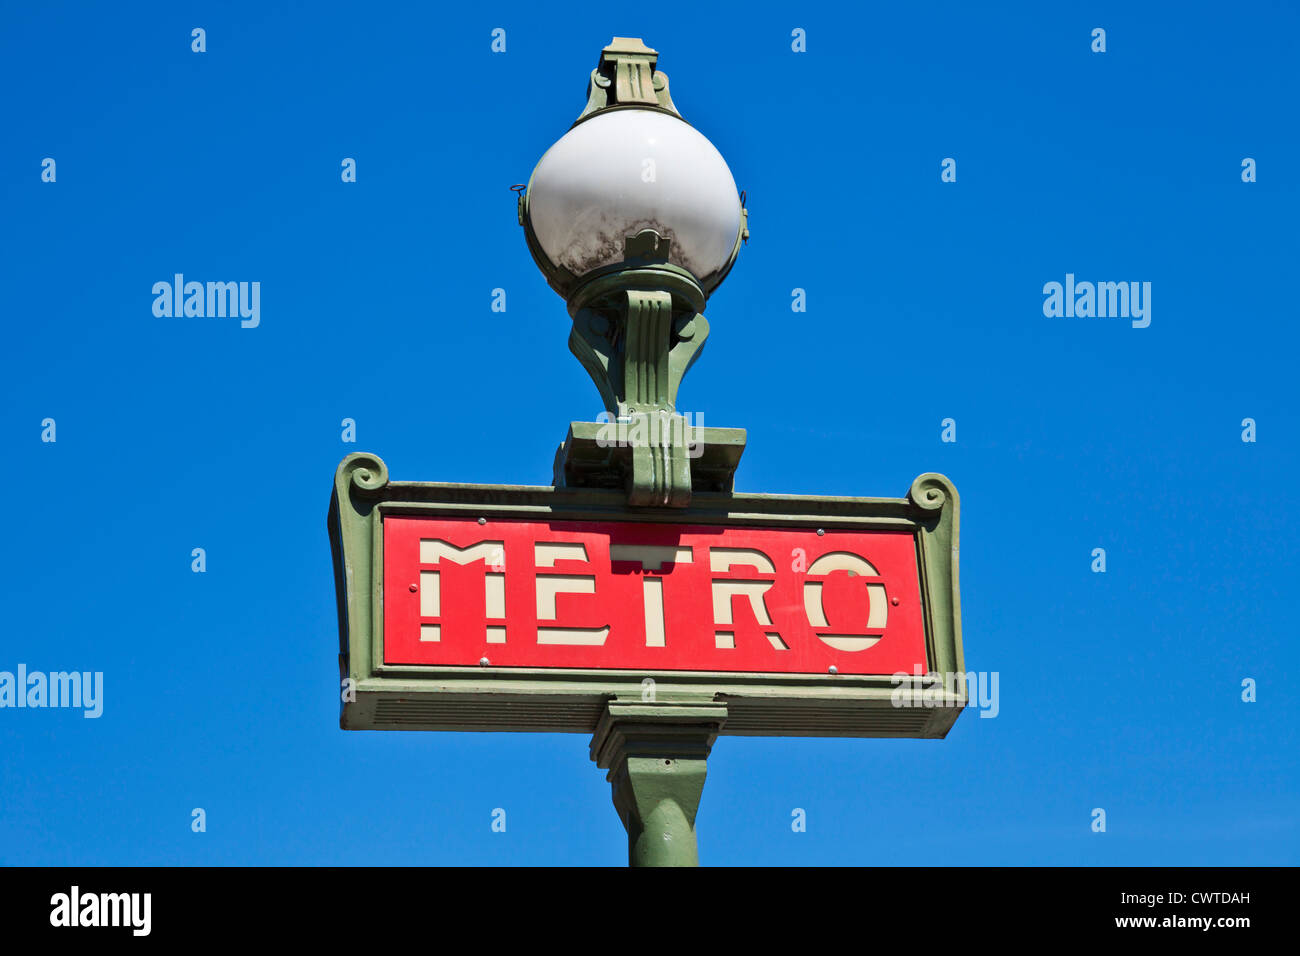 Paris metro sign against a clear blue sky France EU Europe - Stock Image